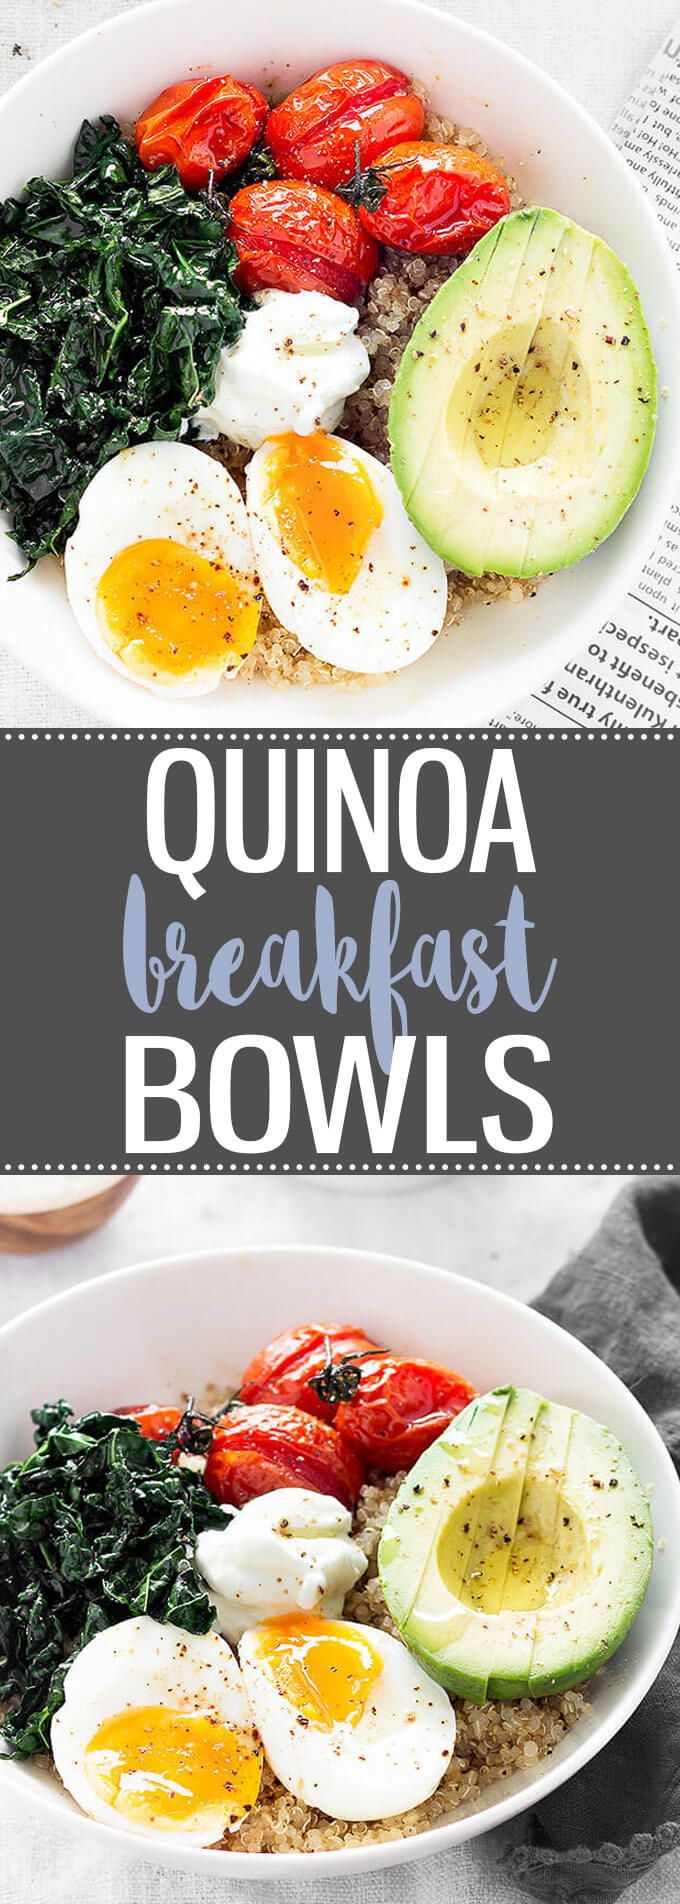 Savory Quinoa Breakfast Bowls - A hearty and healthy breakfast bowl great for breakfast, brunch, or